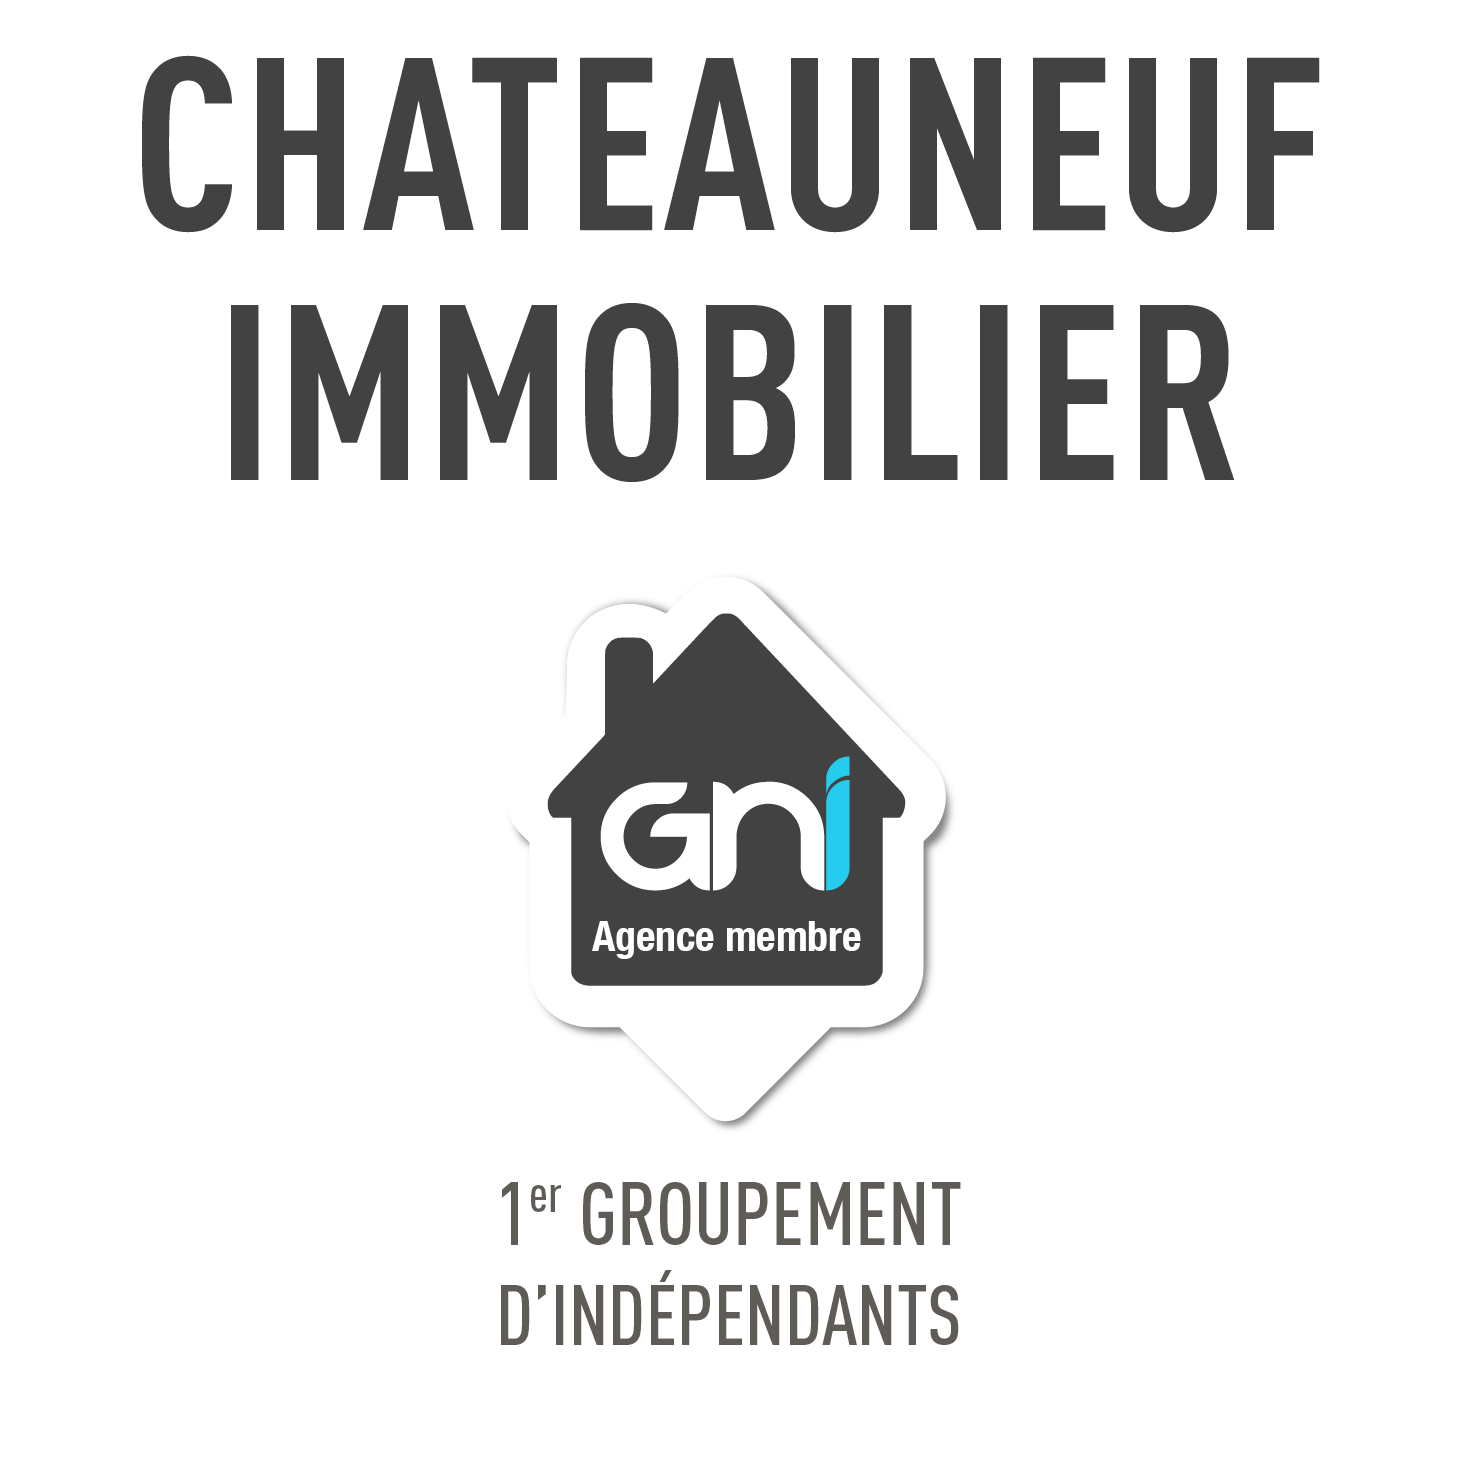 Châteauneuf Immobilier